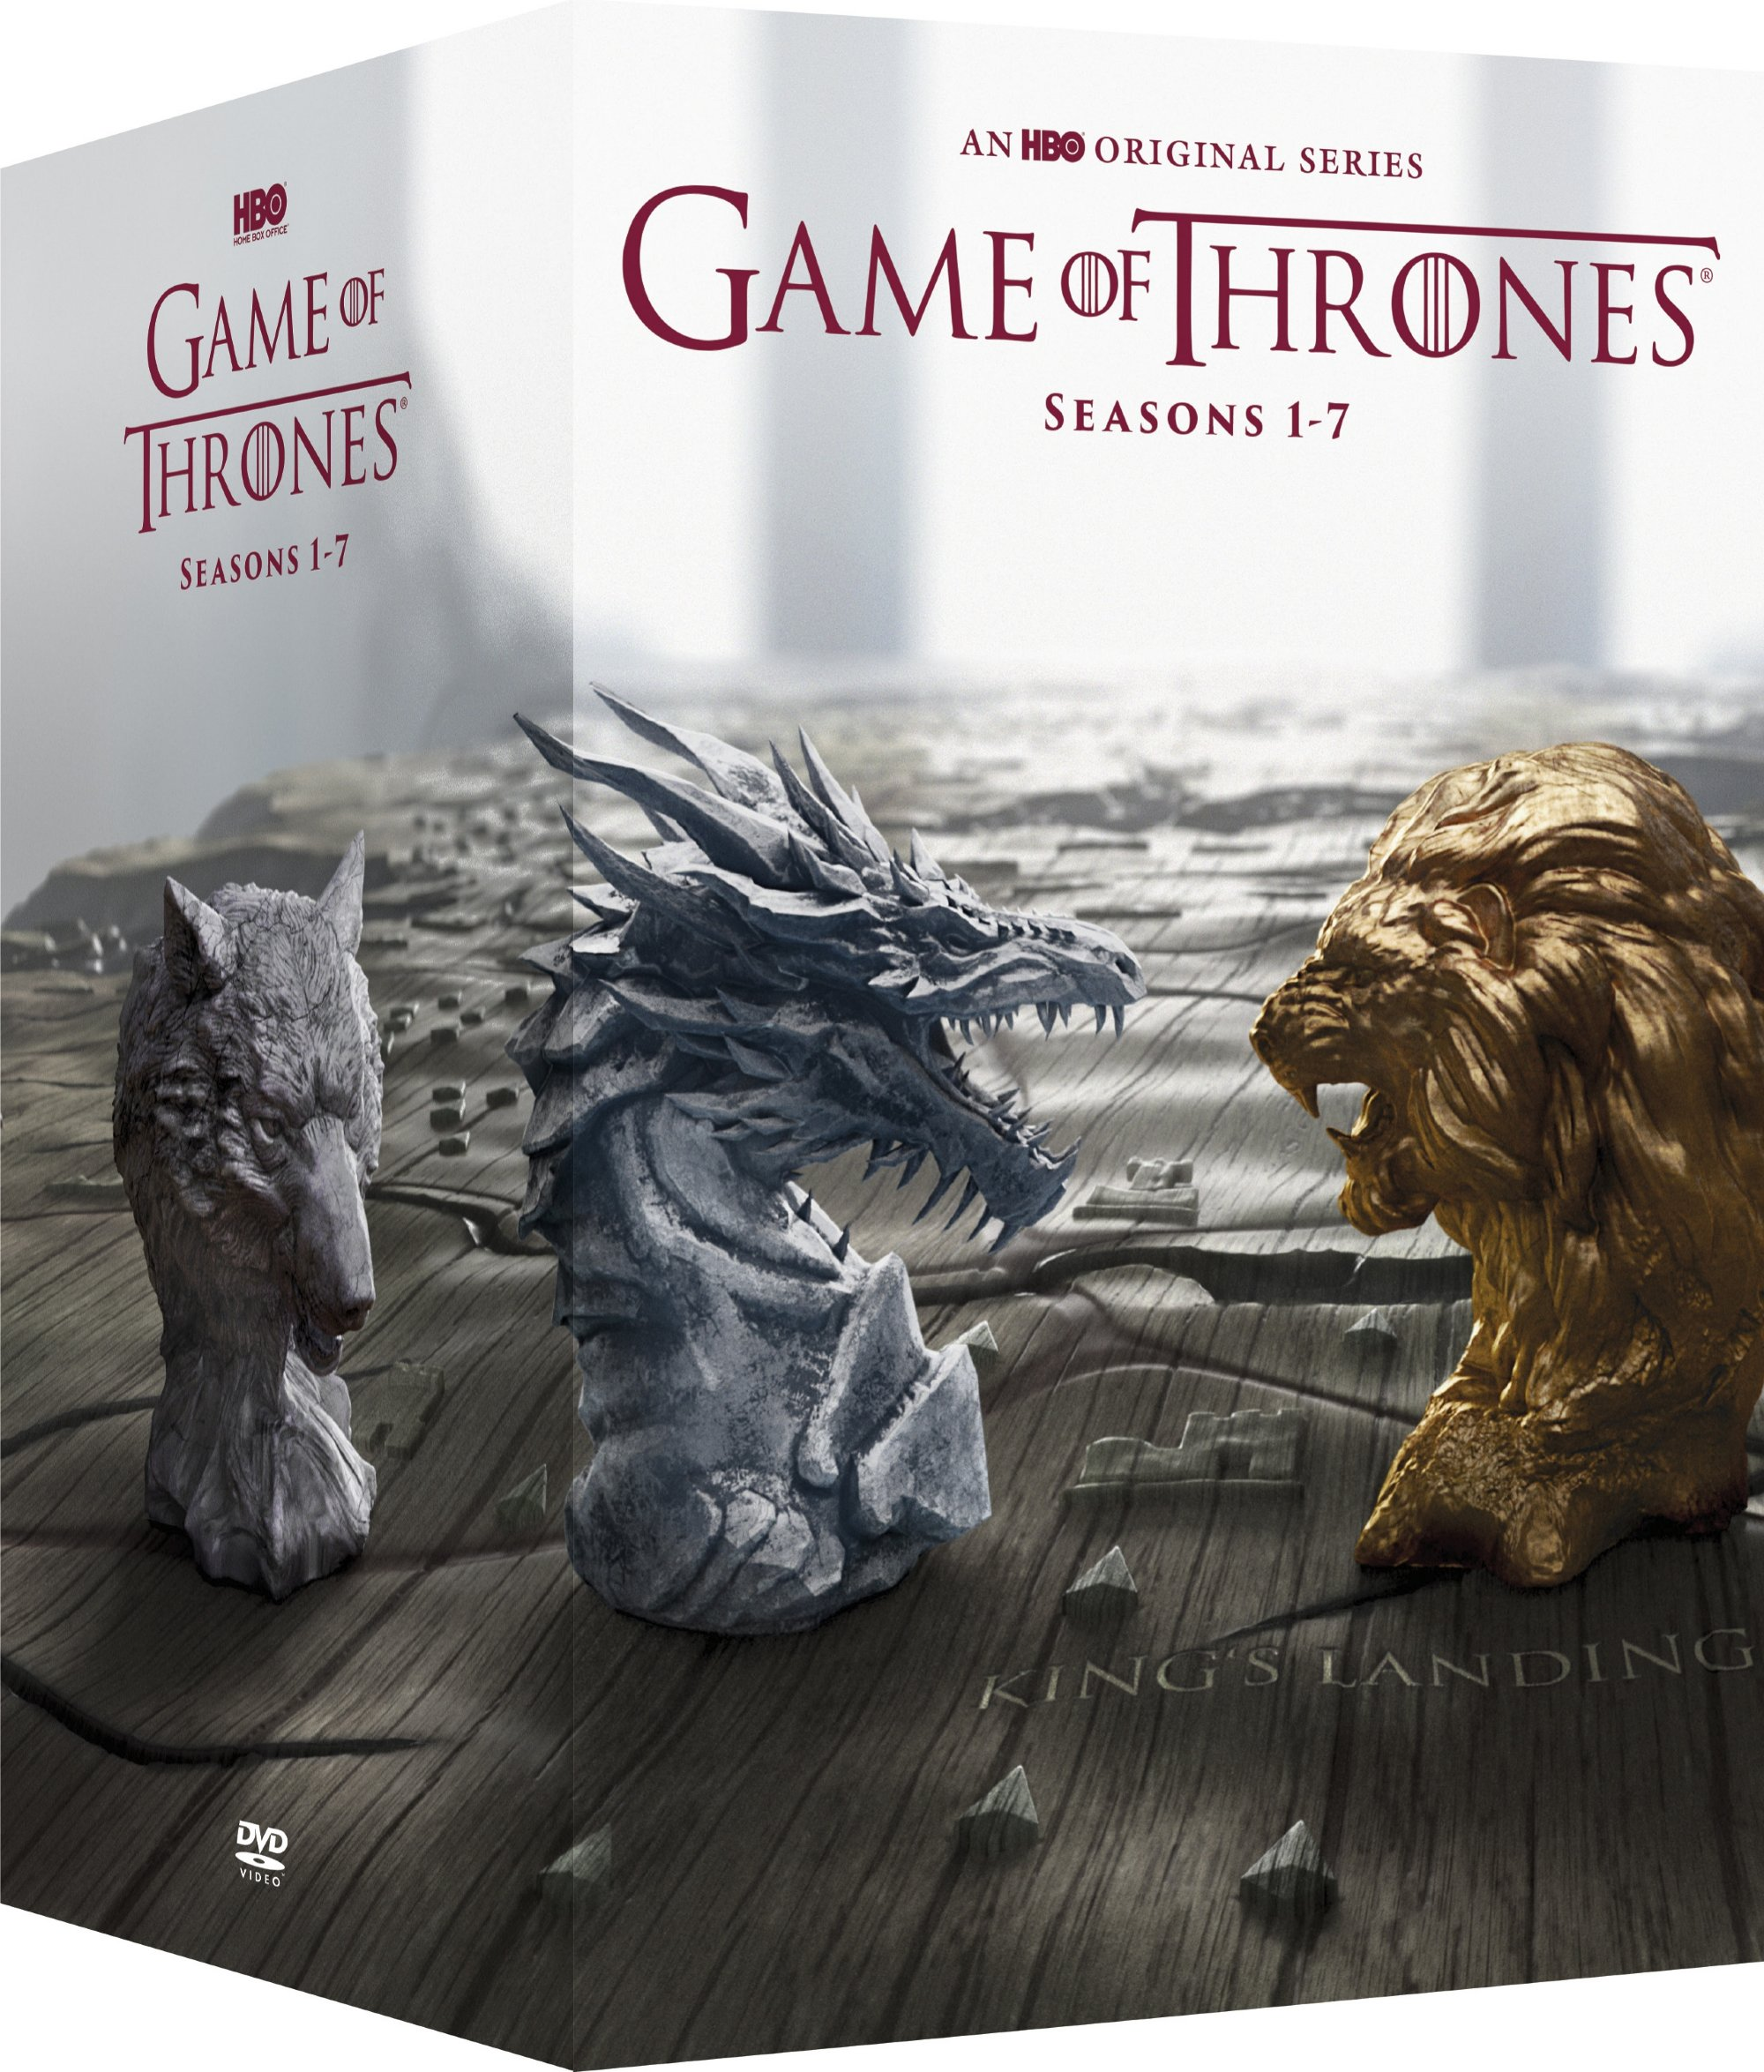 Game of Thrones: The Complete Seasons 1-7 (DVD) by HBO STUDIOS